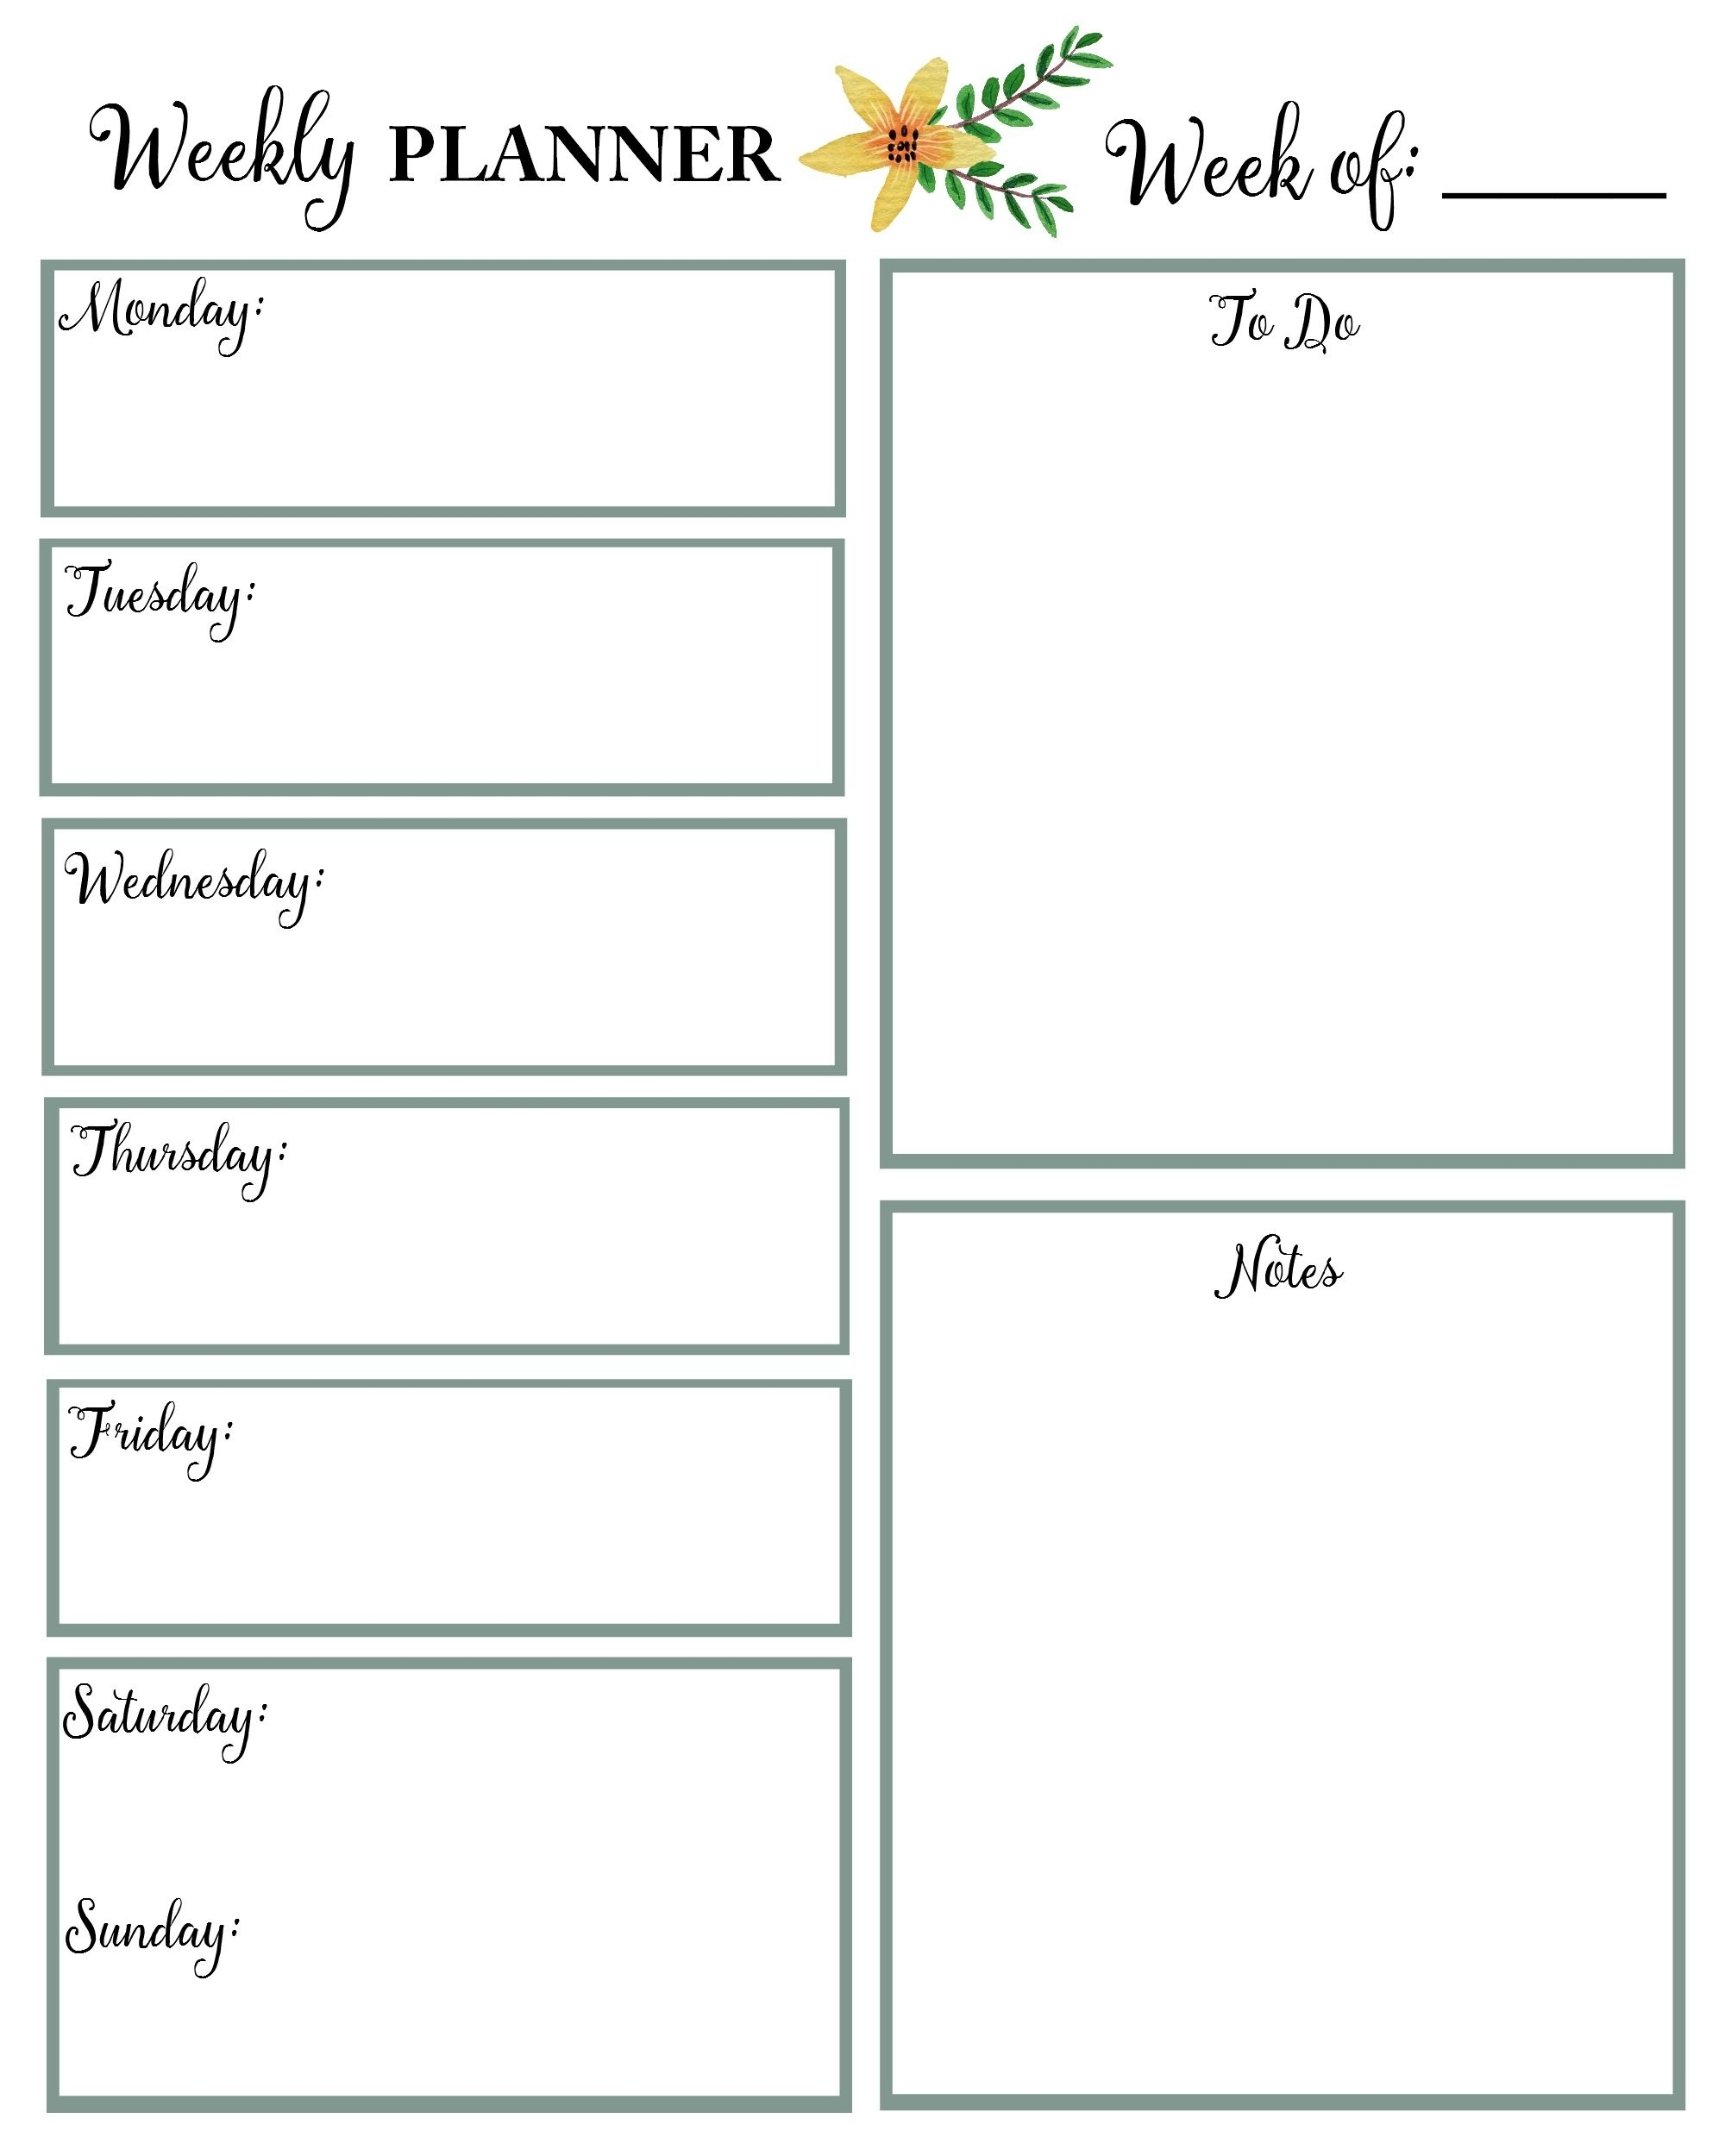 Printable Monthly Calendar | Best Free Printables | Daily